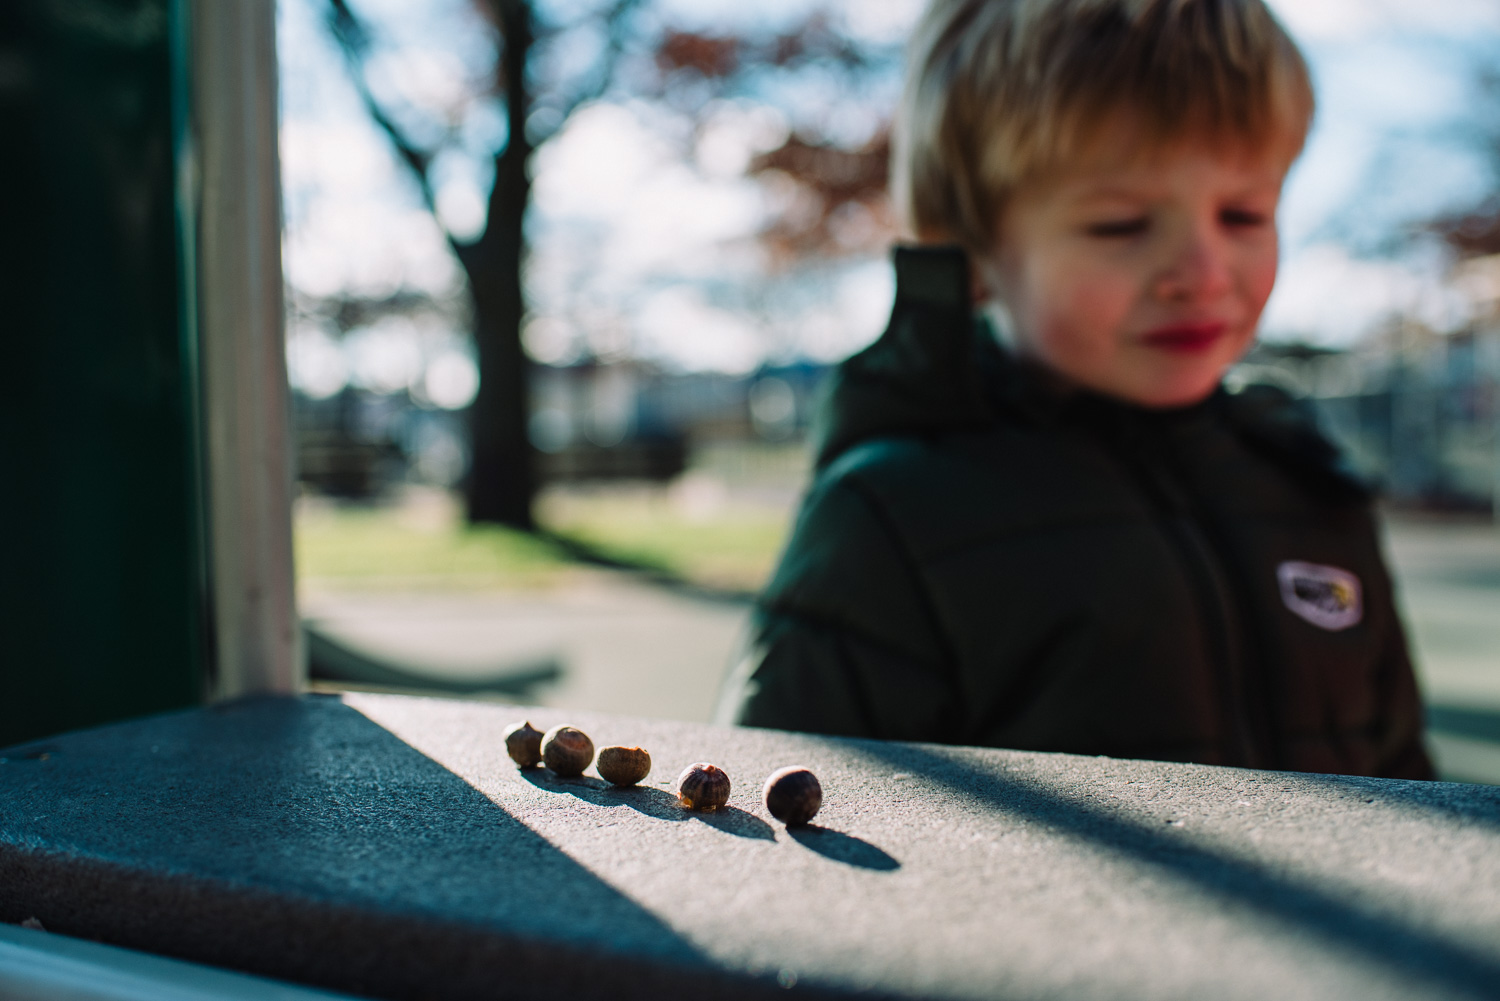 A line of acorns on the playground.